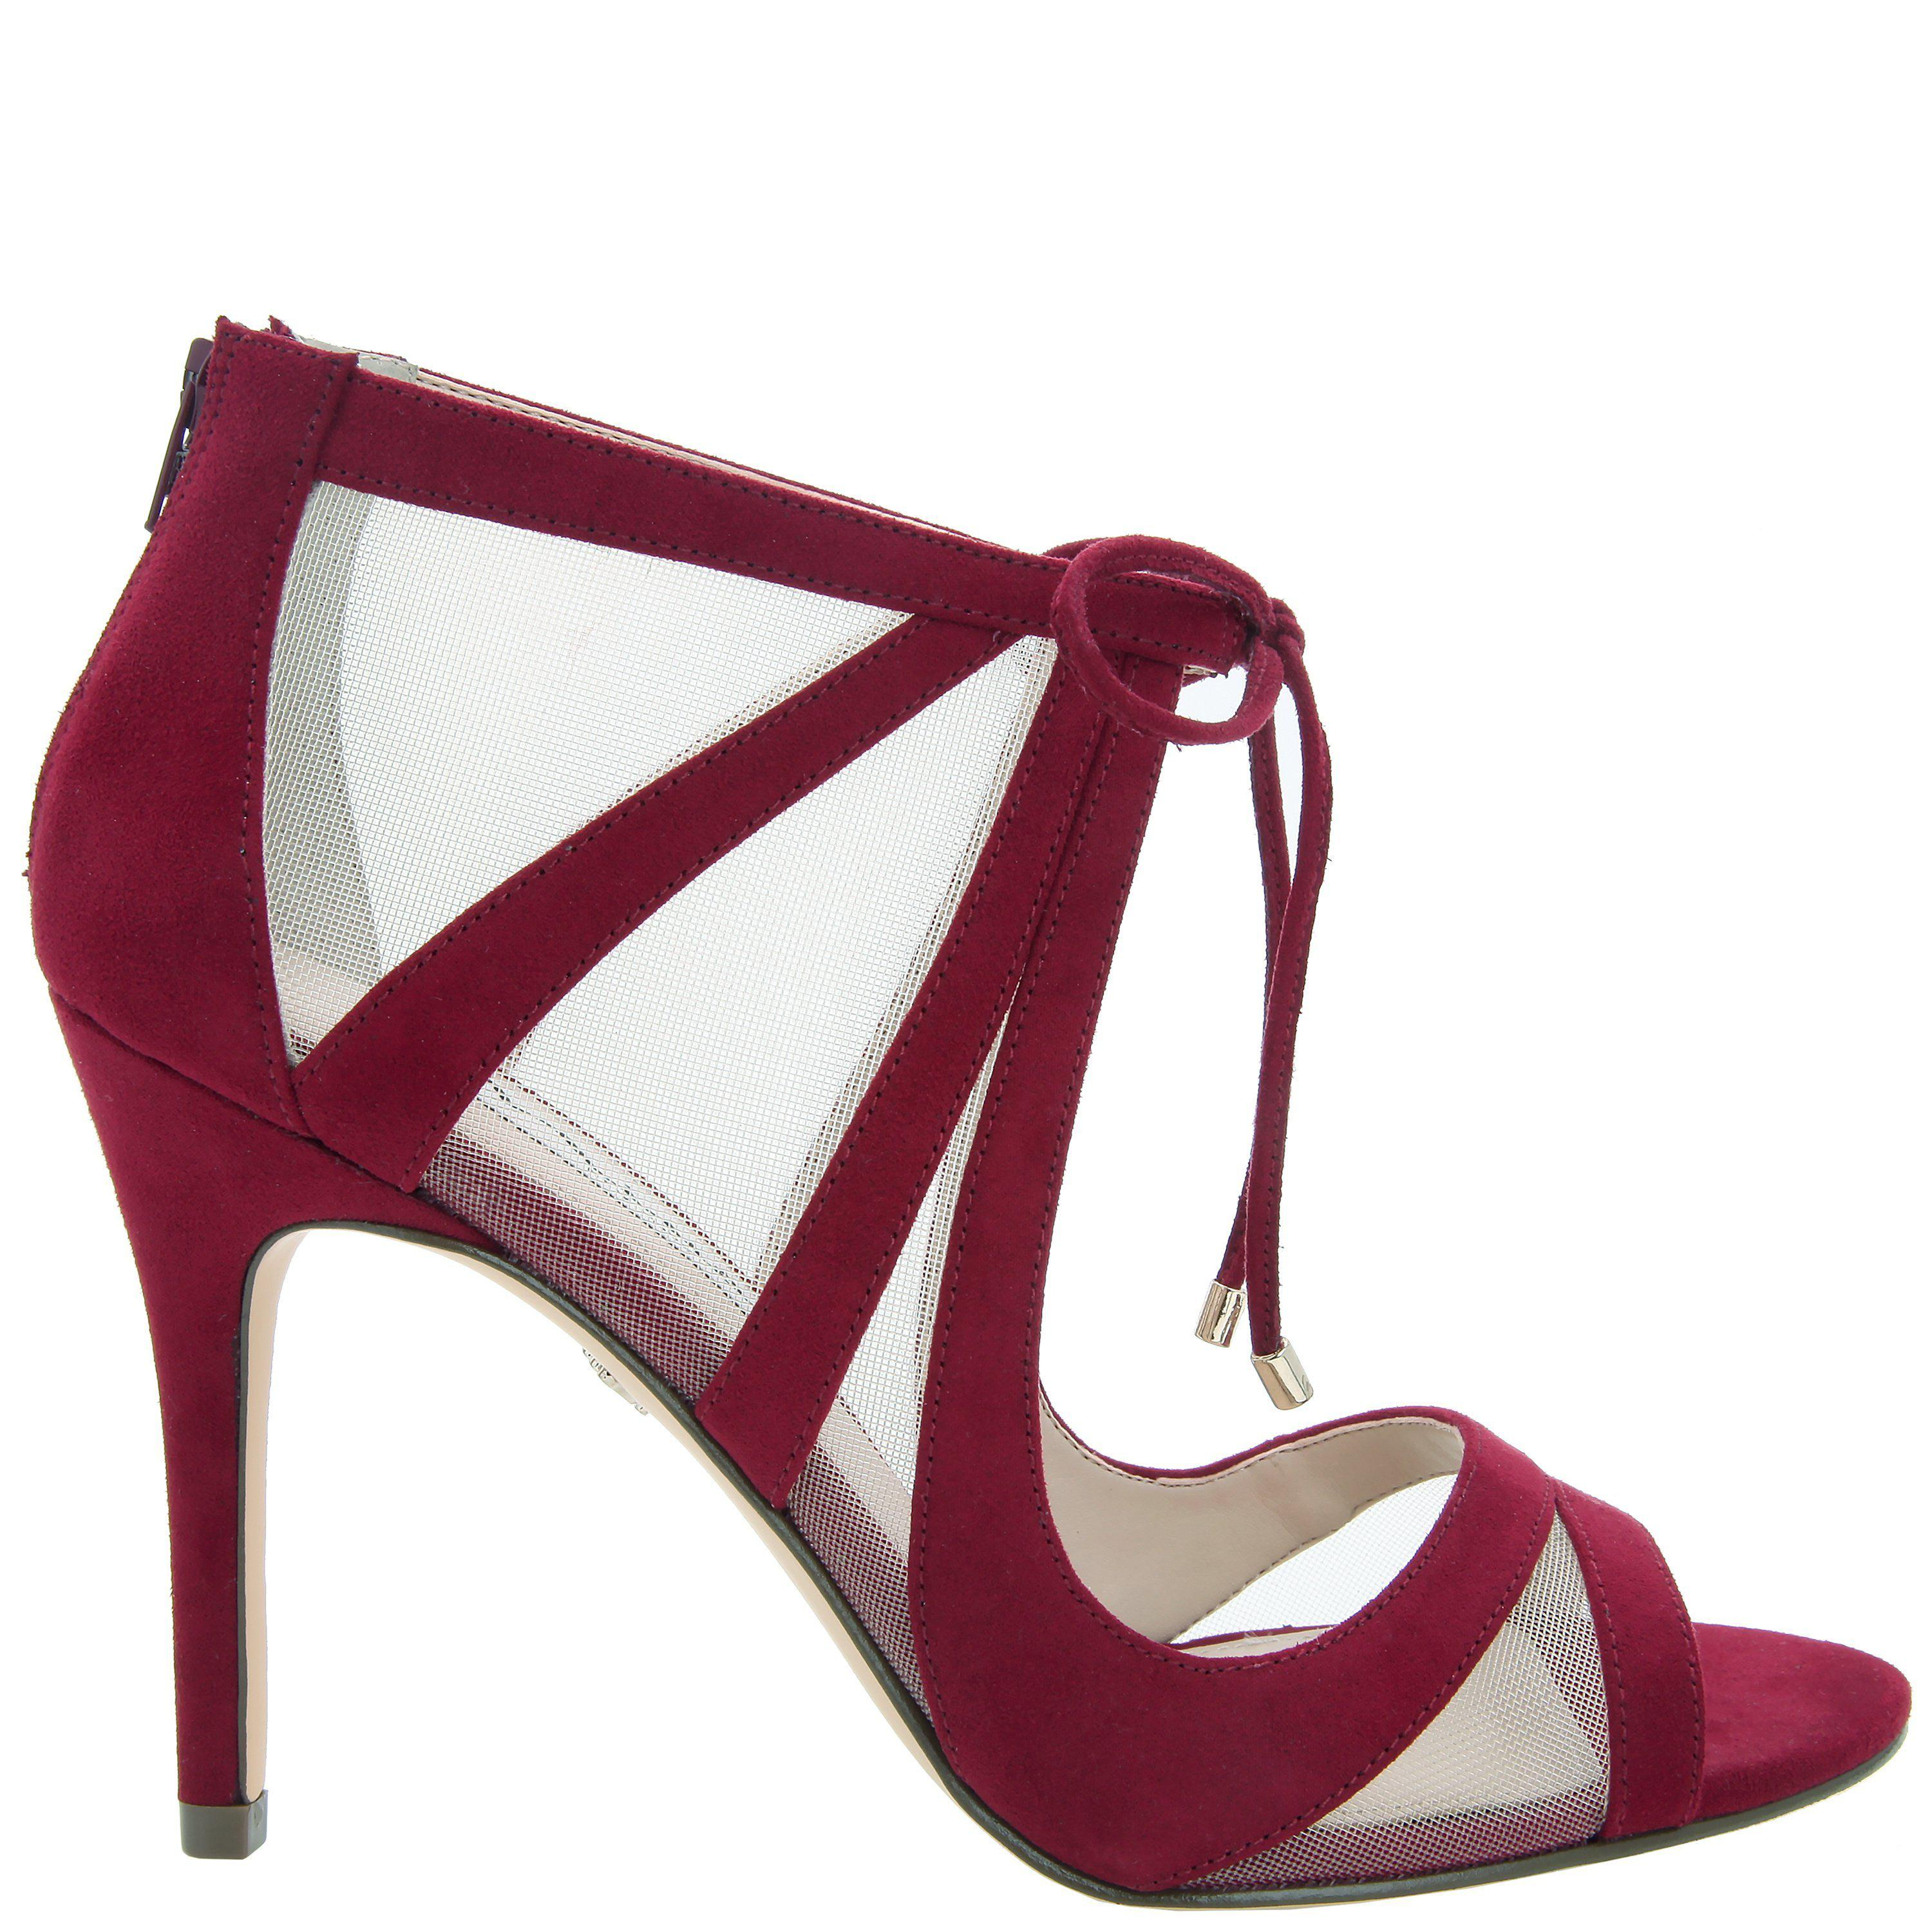 Lyst - Nina Cherie-cranberry Satin in Red - Save 63%